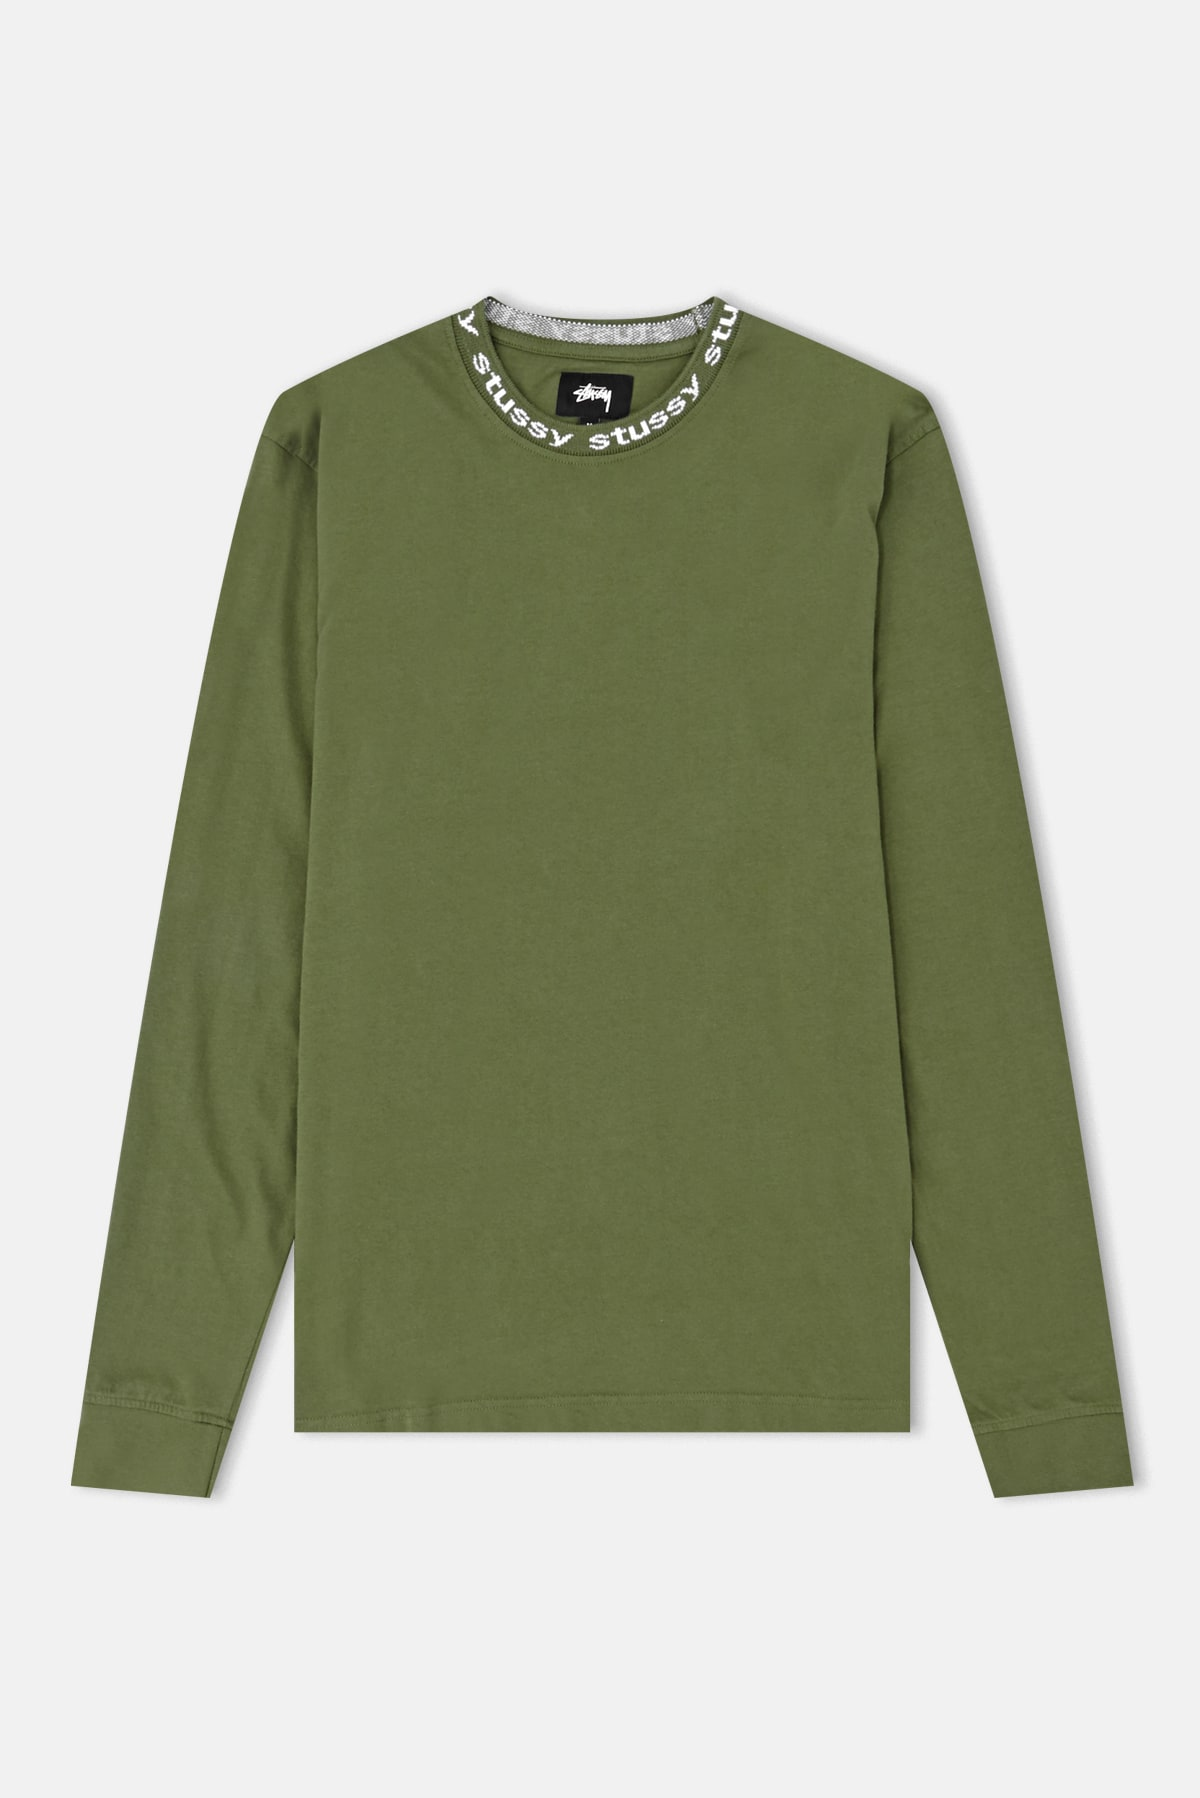 6f883667a Stussy Owen Crew L S T-Shirt available from Priory